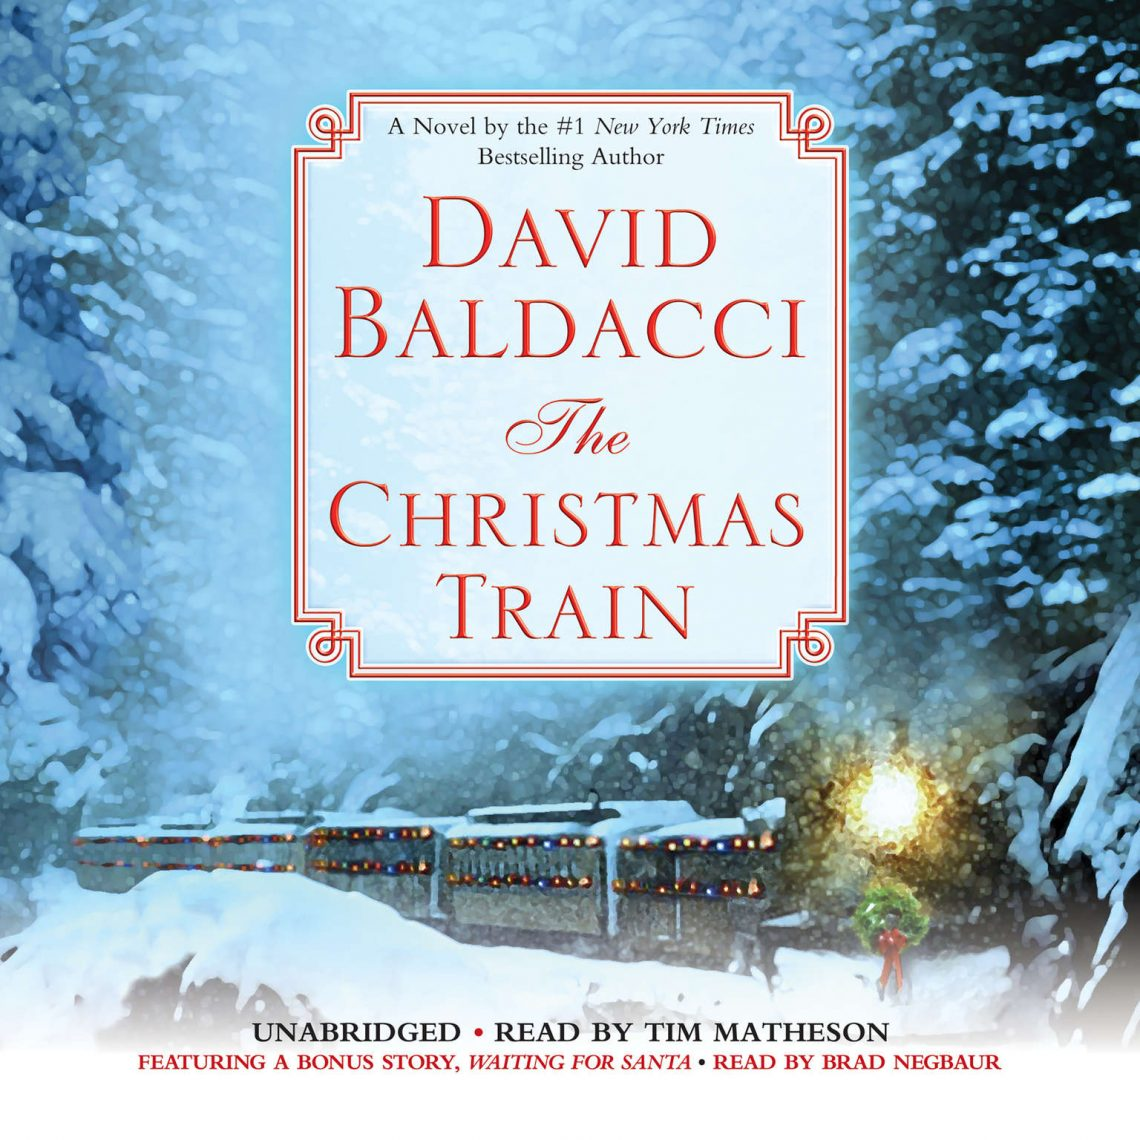 The Christmas Train Audiobook Free Download and Listen by David Baldacci